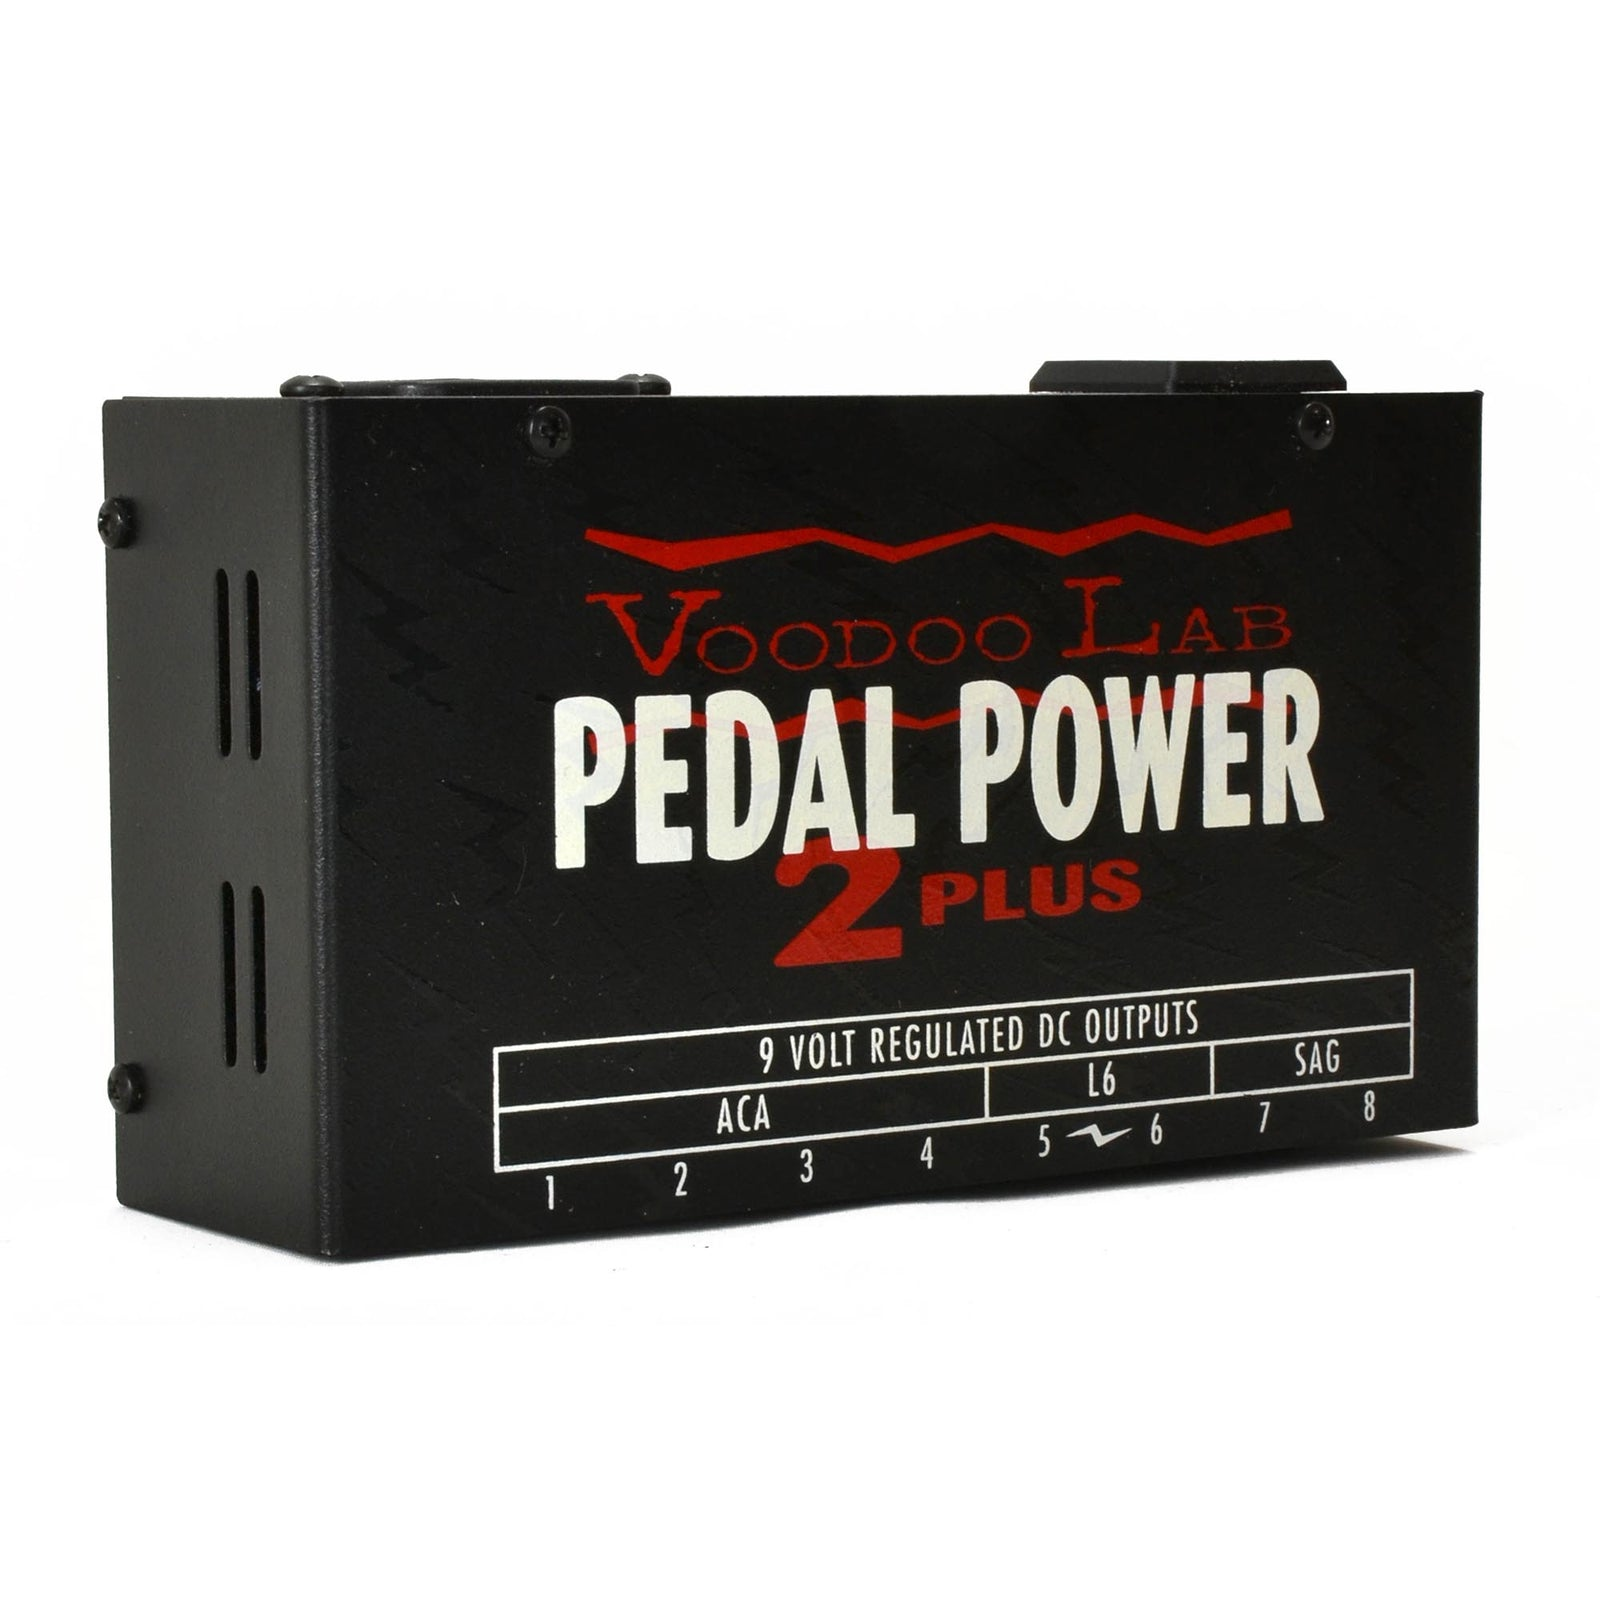 Voodoo Lab Pedal Power 2 Plus - Used